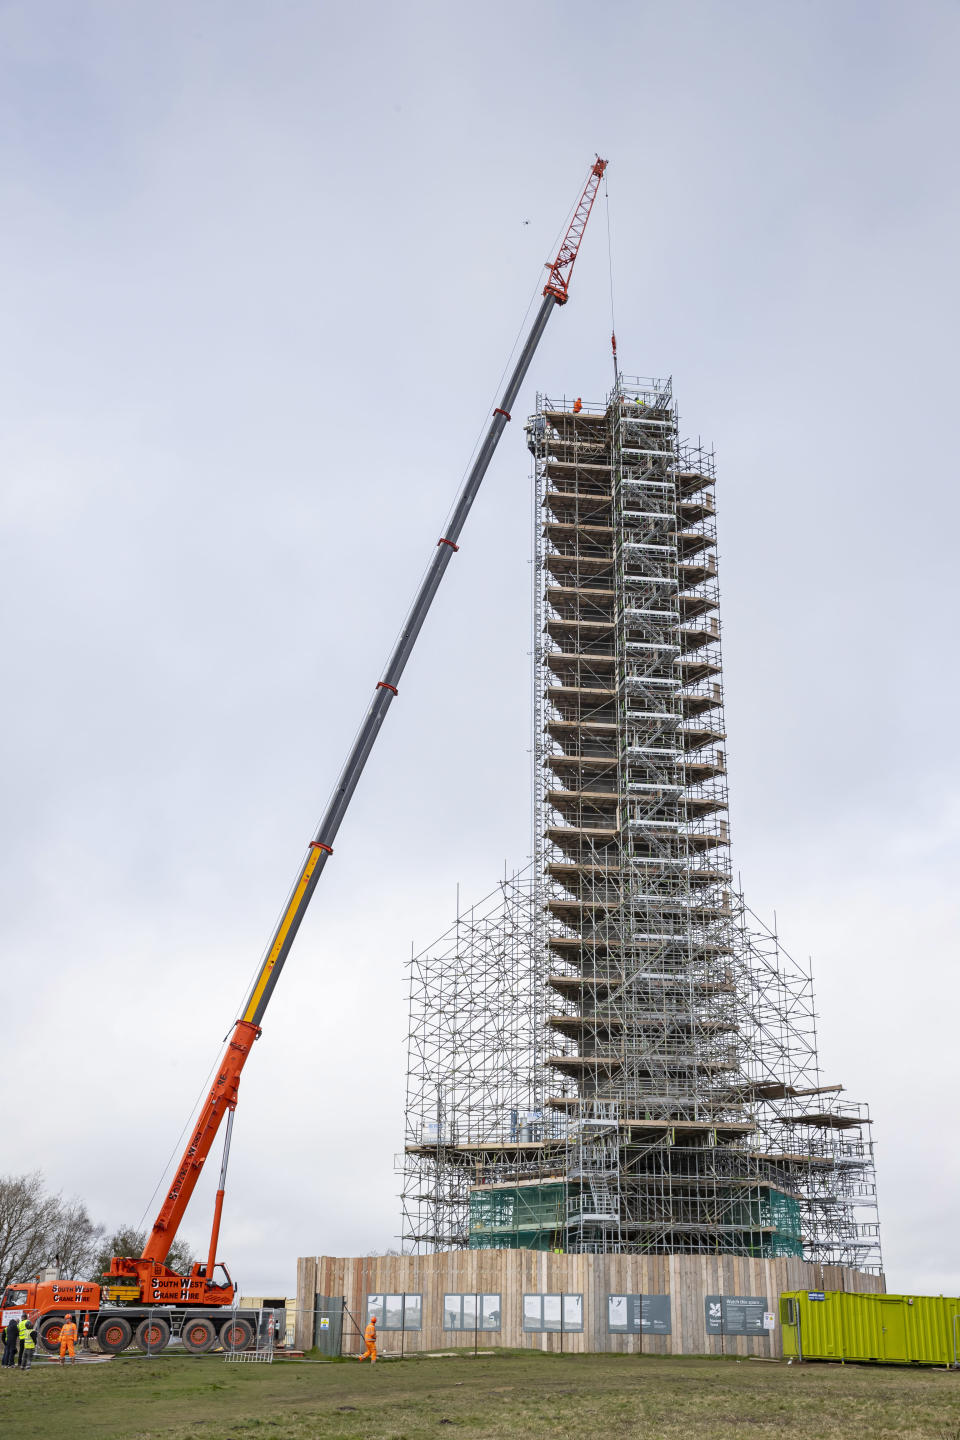 Over 1,500 new stones and eight miles of scaffolding were needed for the £3.1m project (Chris Lacey/National Trust/PA).